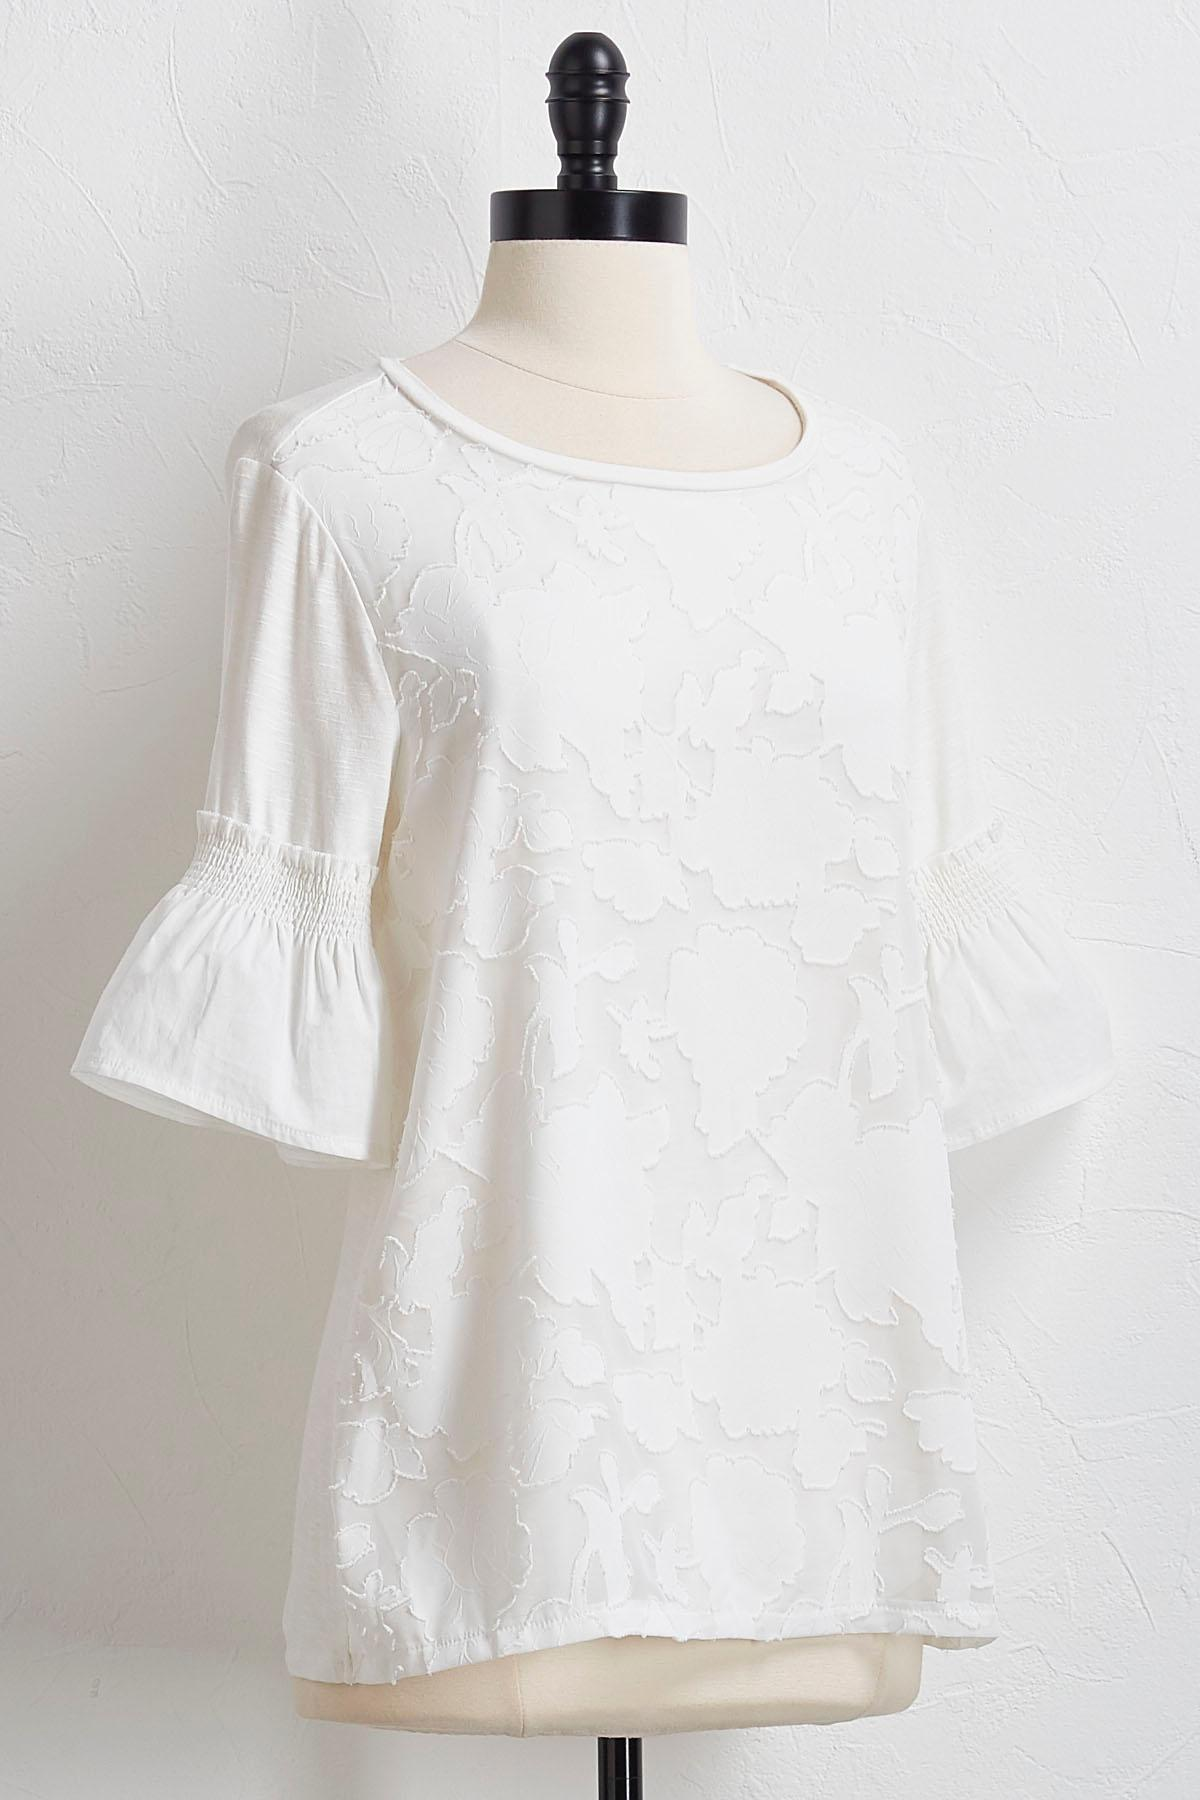 Textured Floral Smocked Sleeve Top